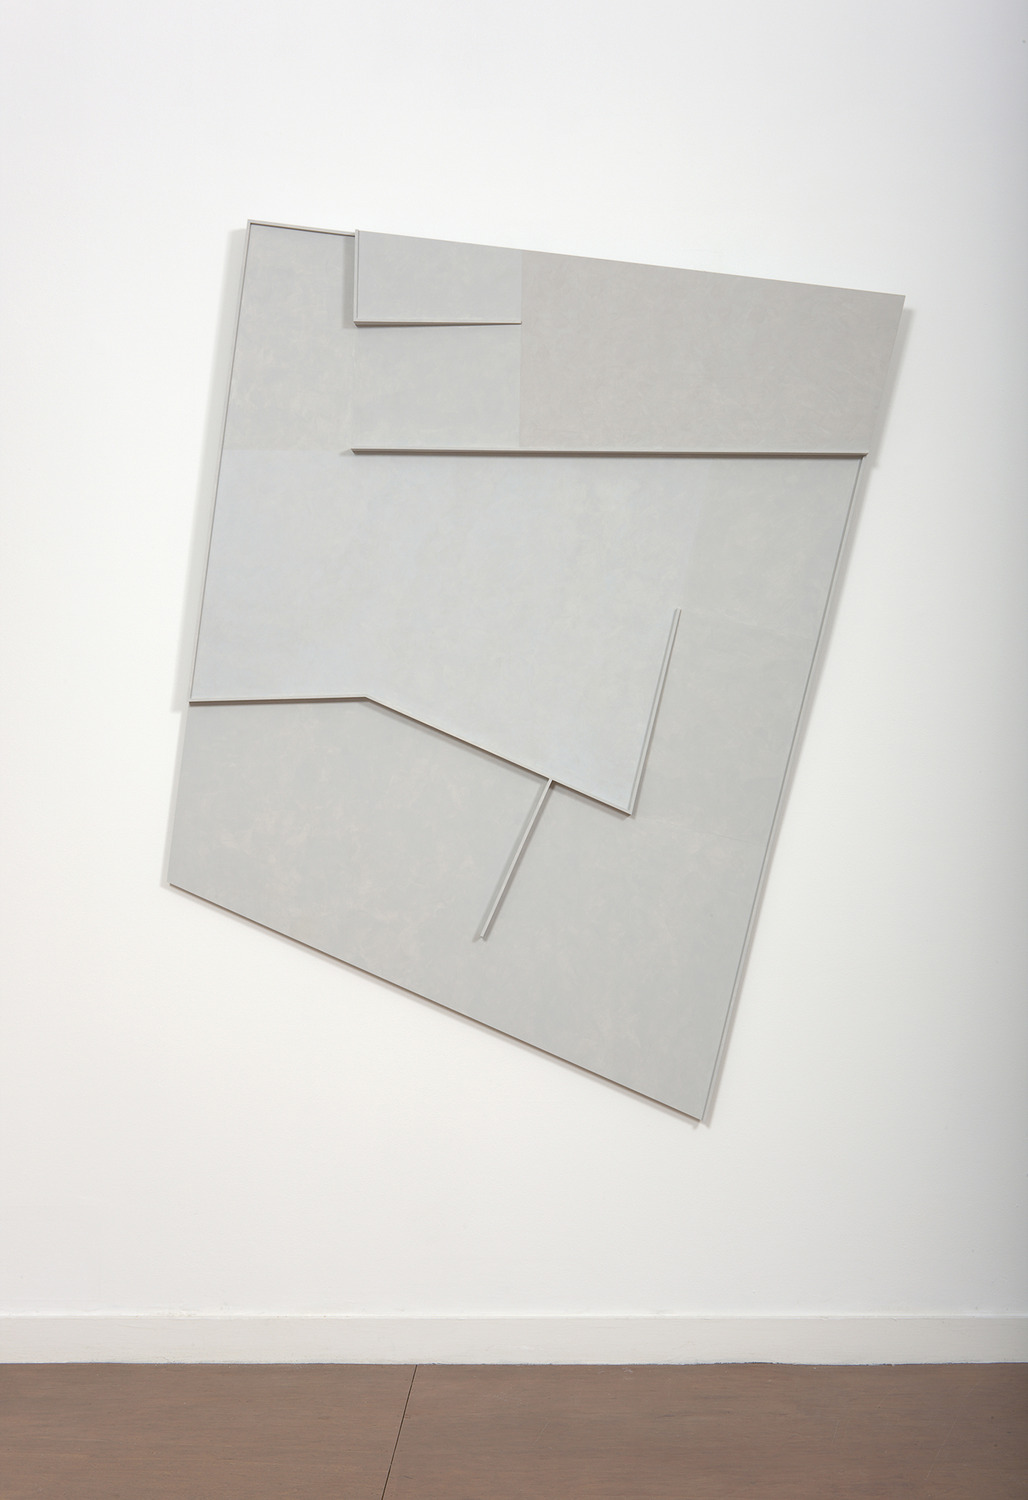 Lacuna Relief, 2009, Acrylic on board, 175 x 125 x 10 cm